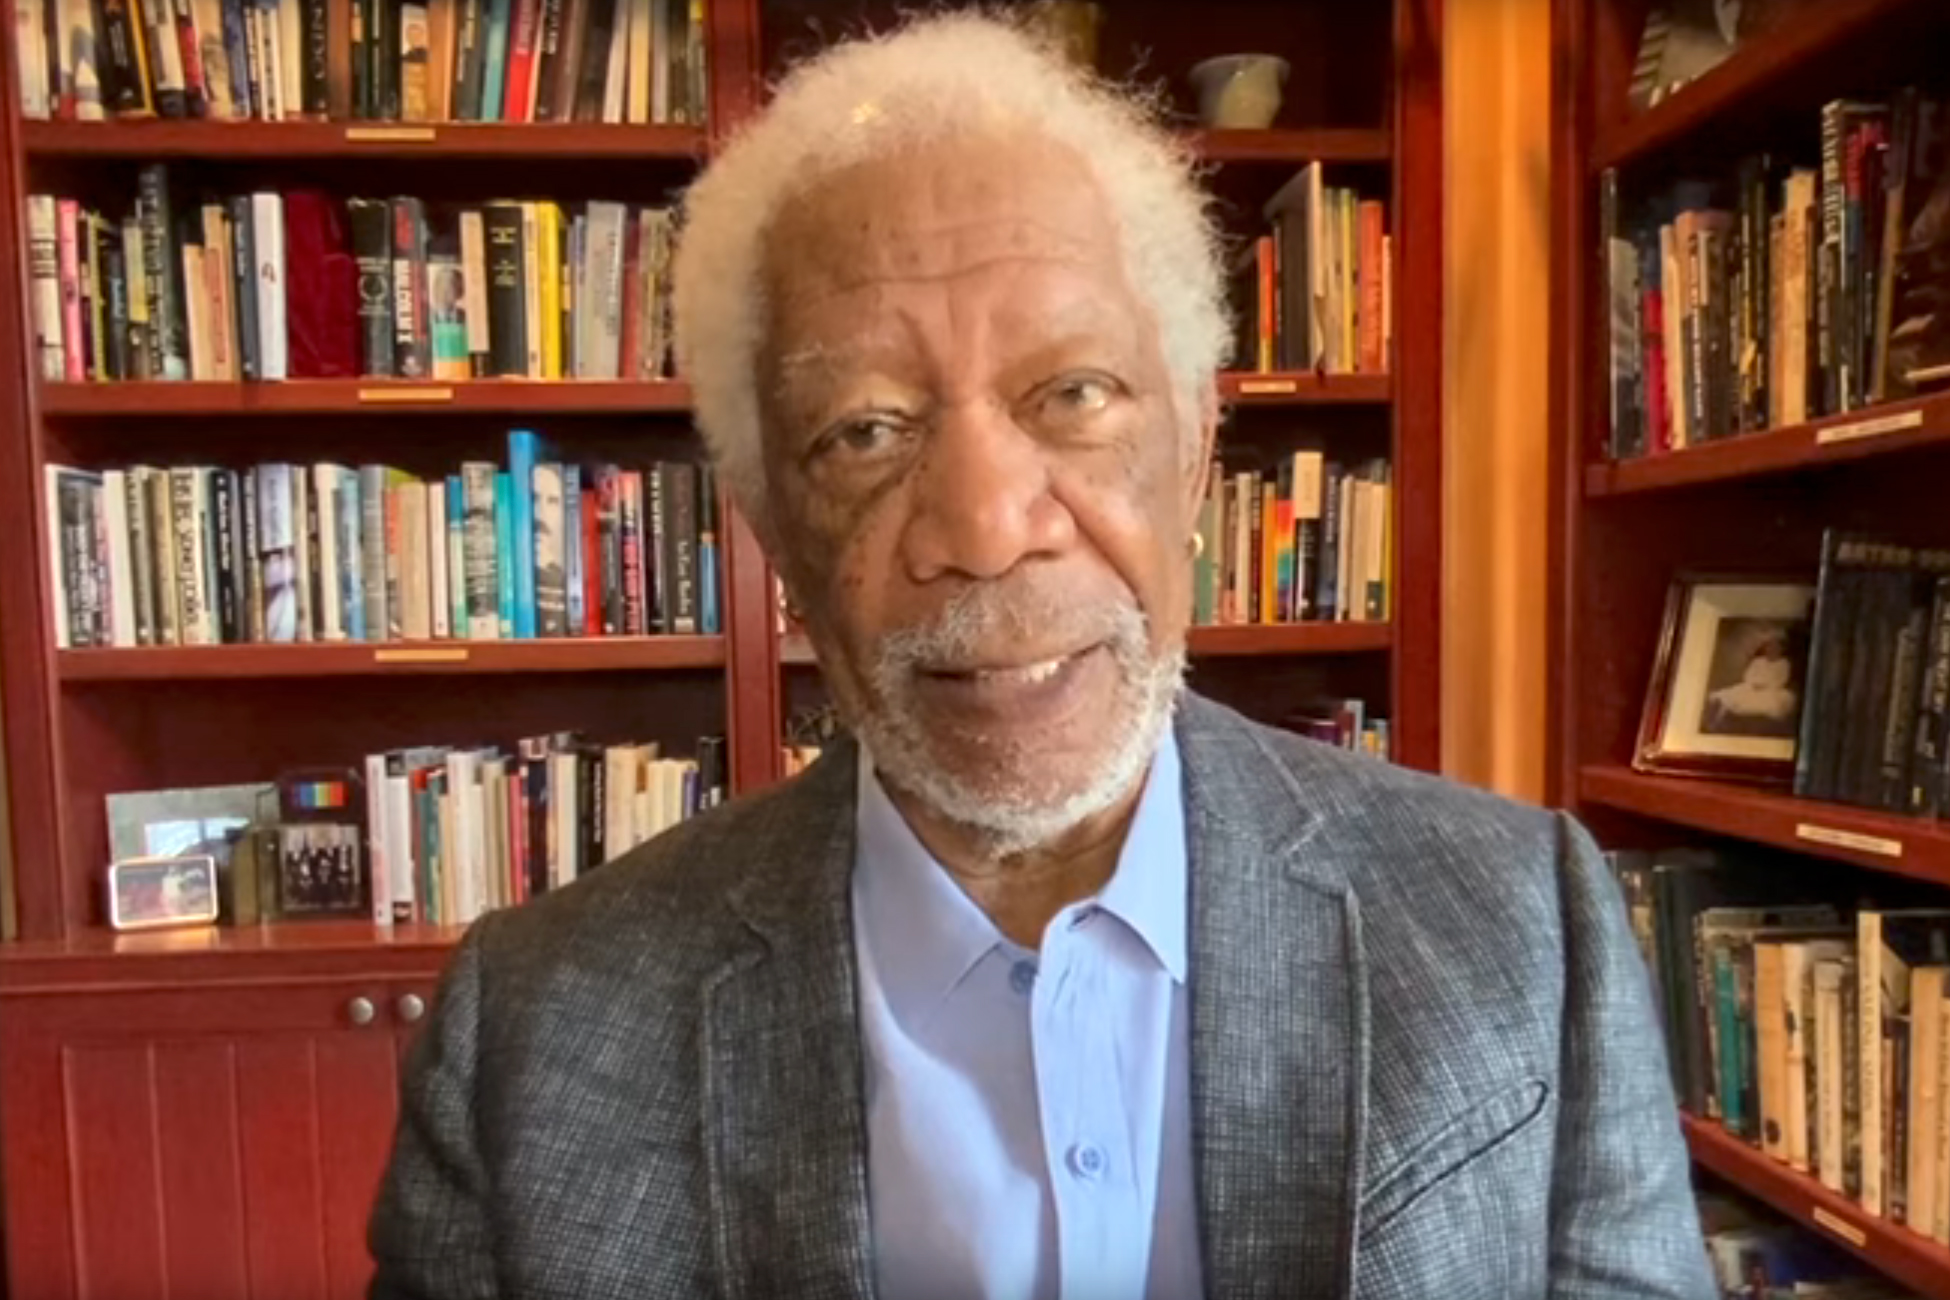 Morgan Freeman, the voice 'people trust,' assures COVID vaccine safety in new PSA